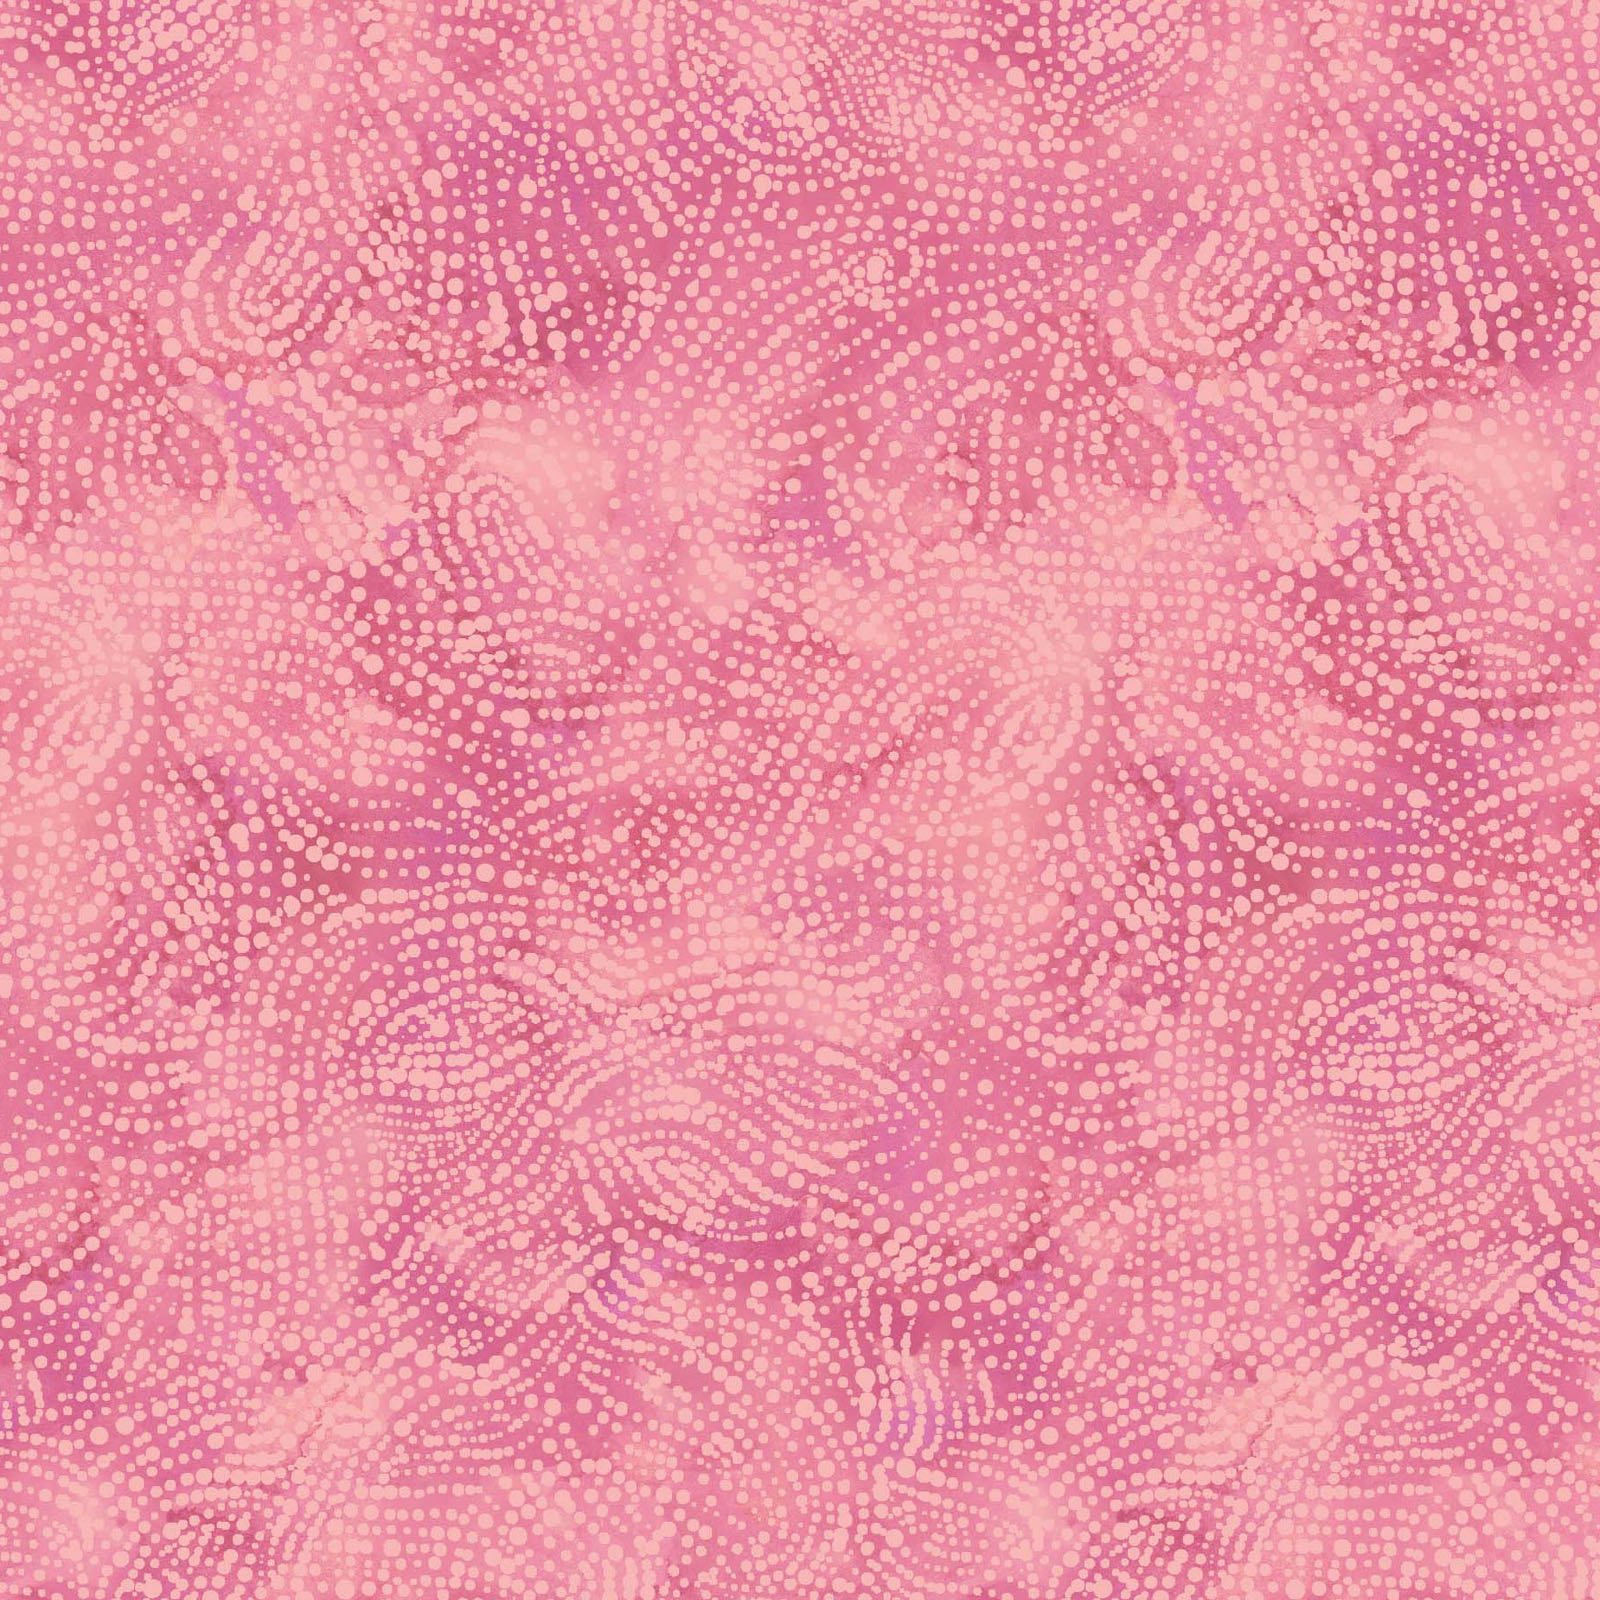 SERE-4492 P - SERENITY BY JETTI HOME PINK - ARRIVING IN JULY 2021